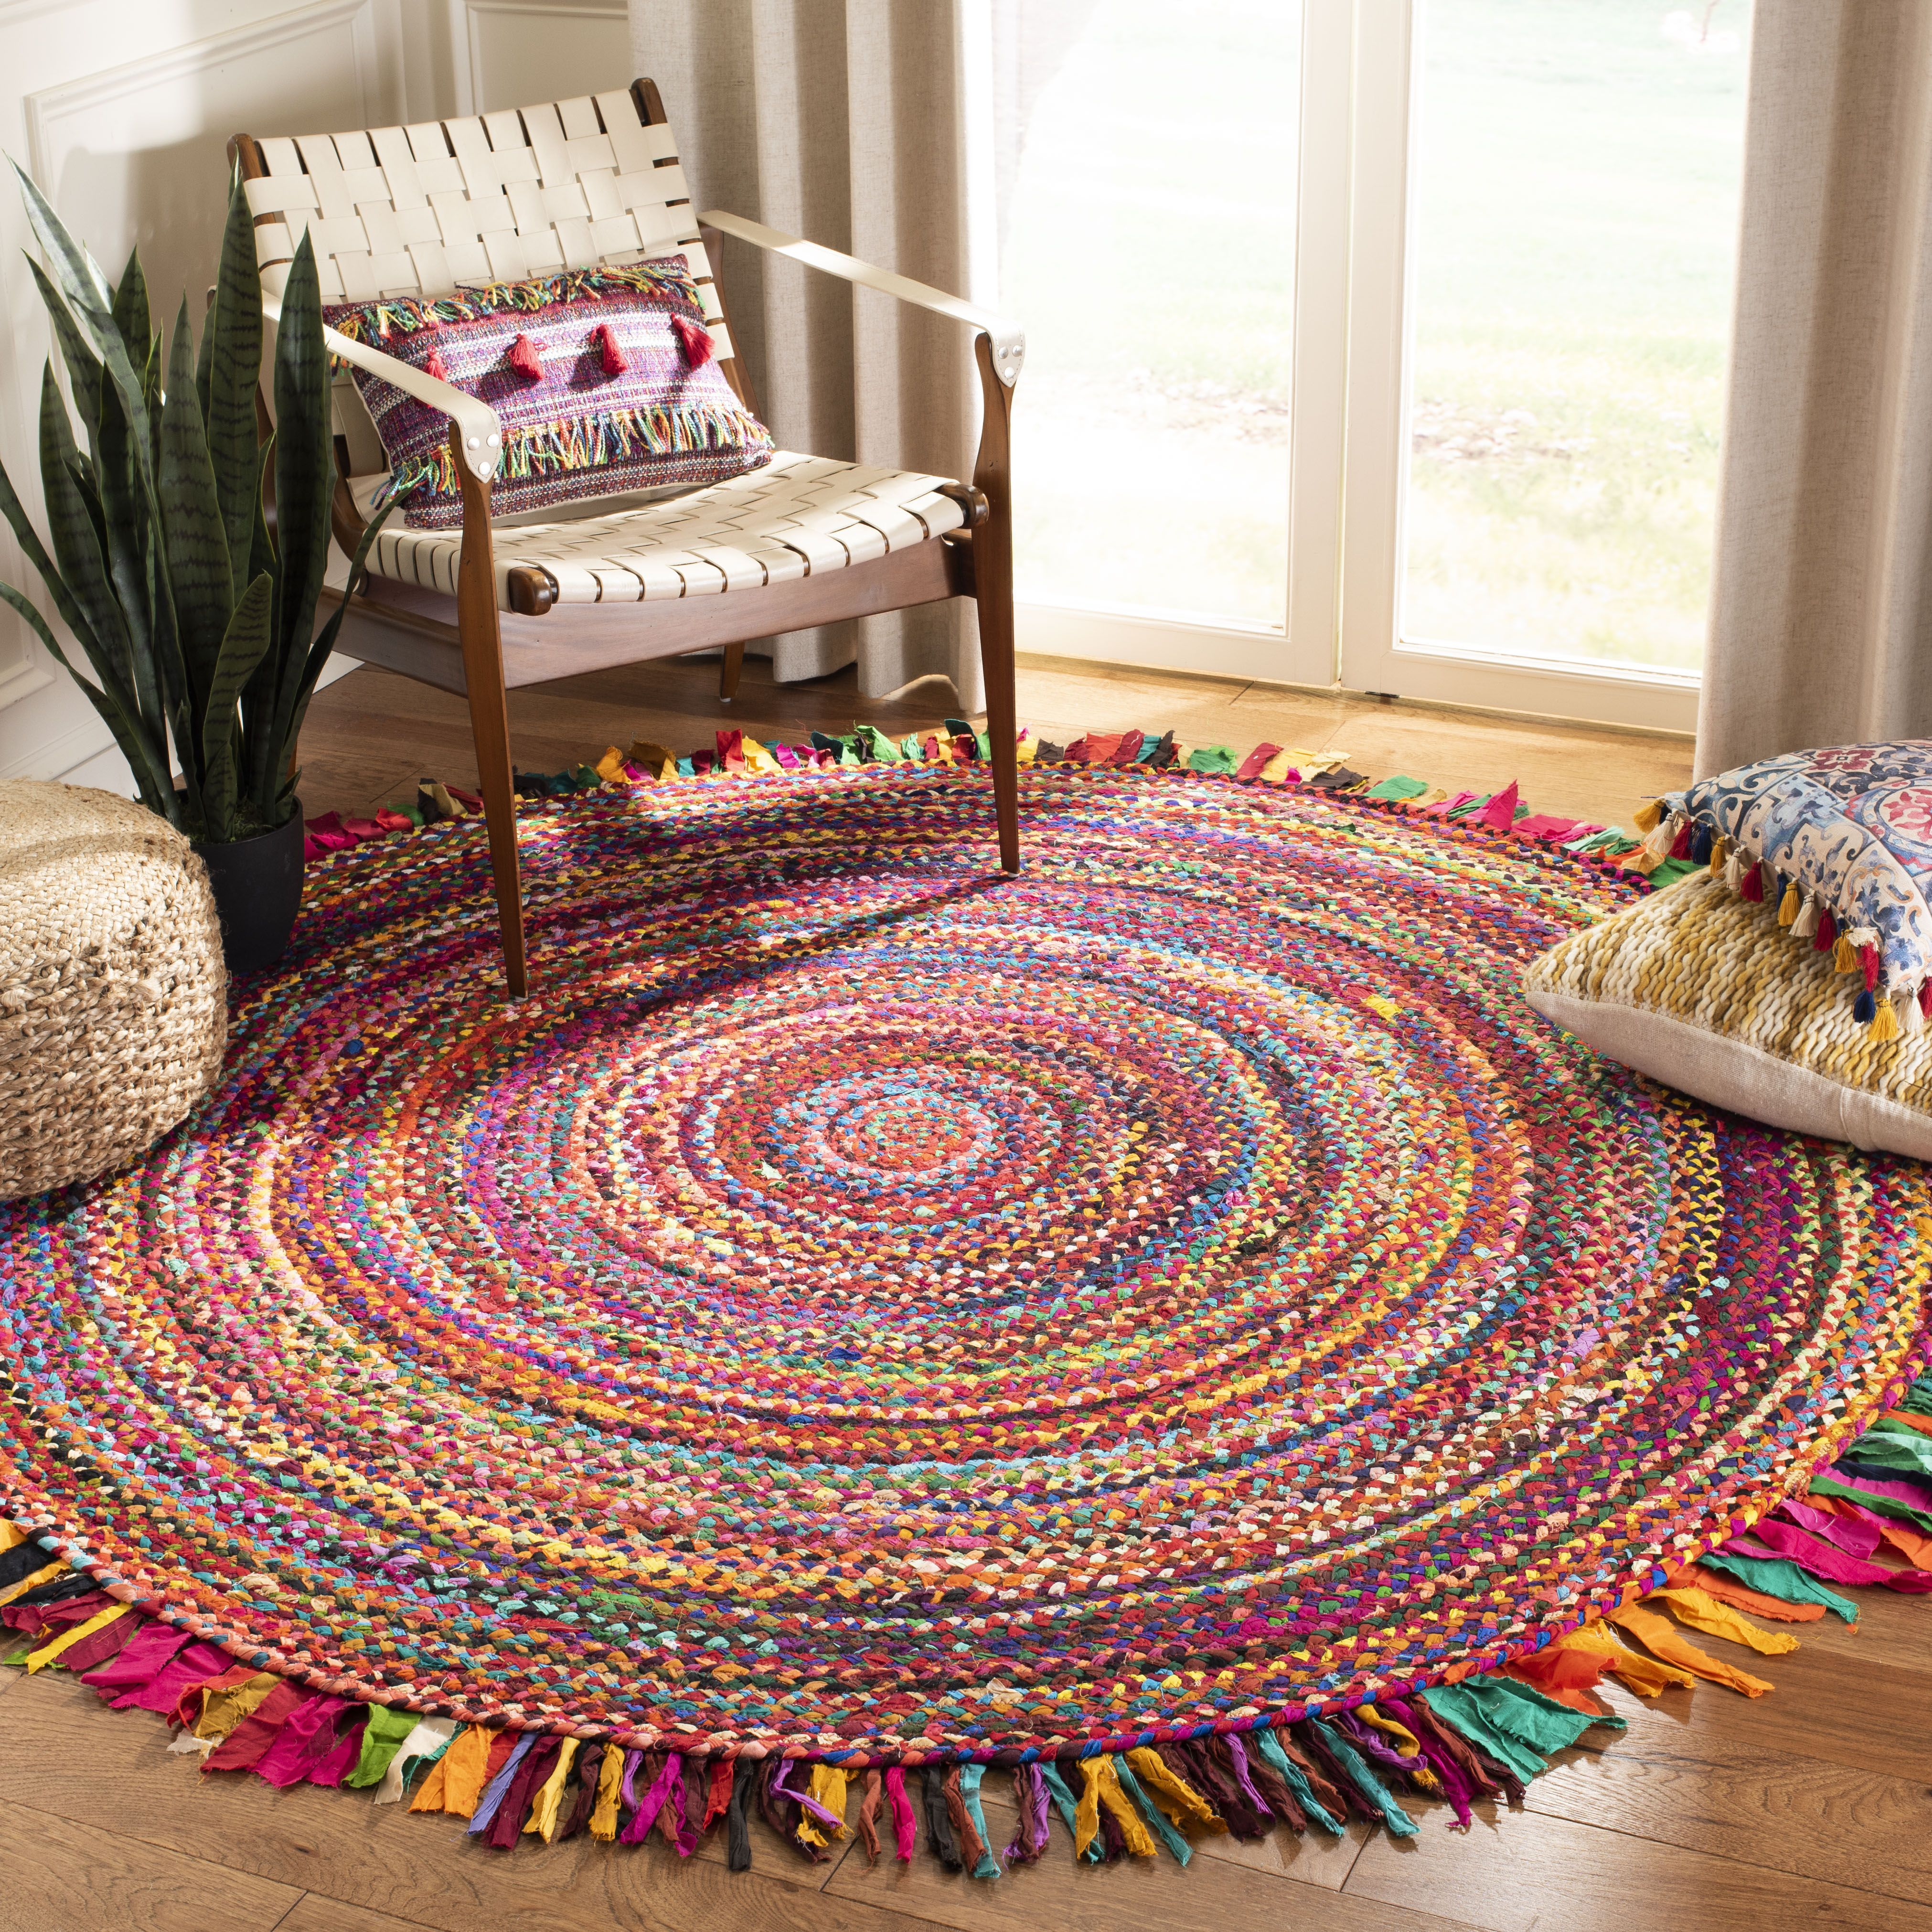 Safavieh Braided Magdalena Colorful Braided Area Rug Walmart Com Area Rugs Rugs Colorful Rugs